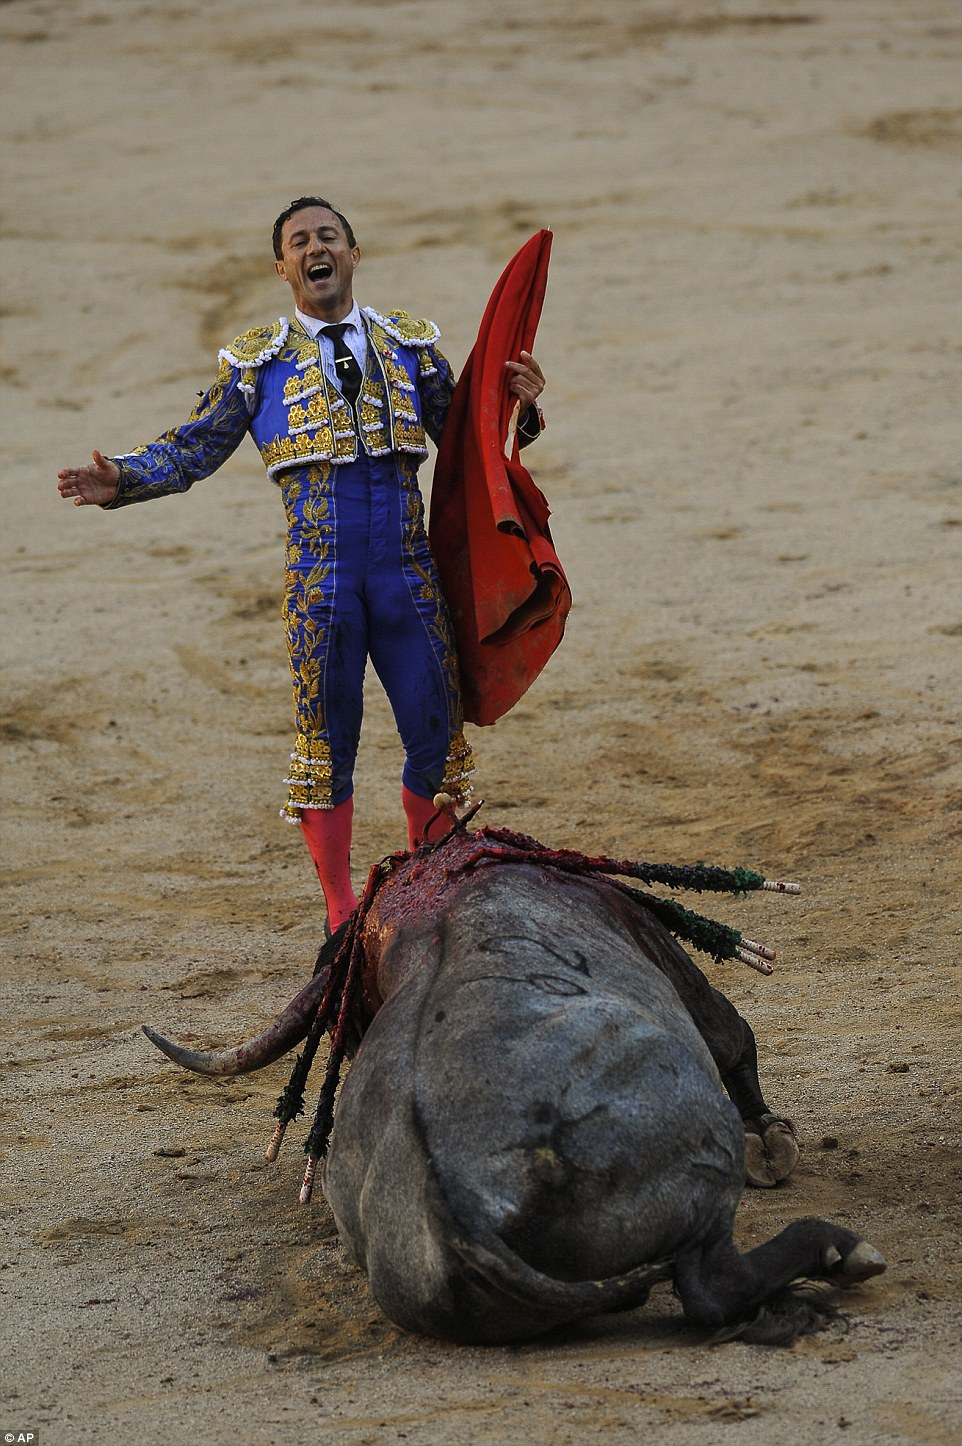 The finish of bullfighting? the thought